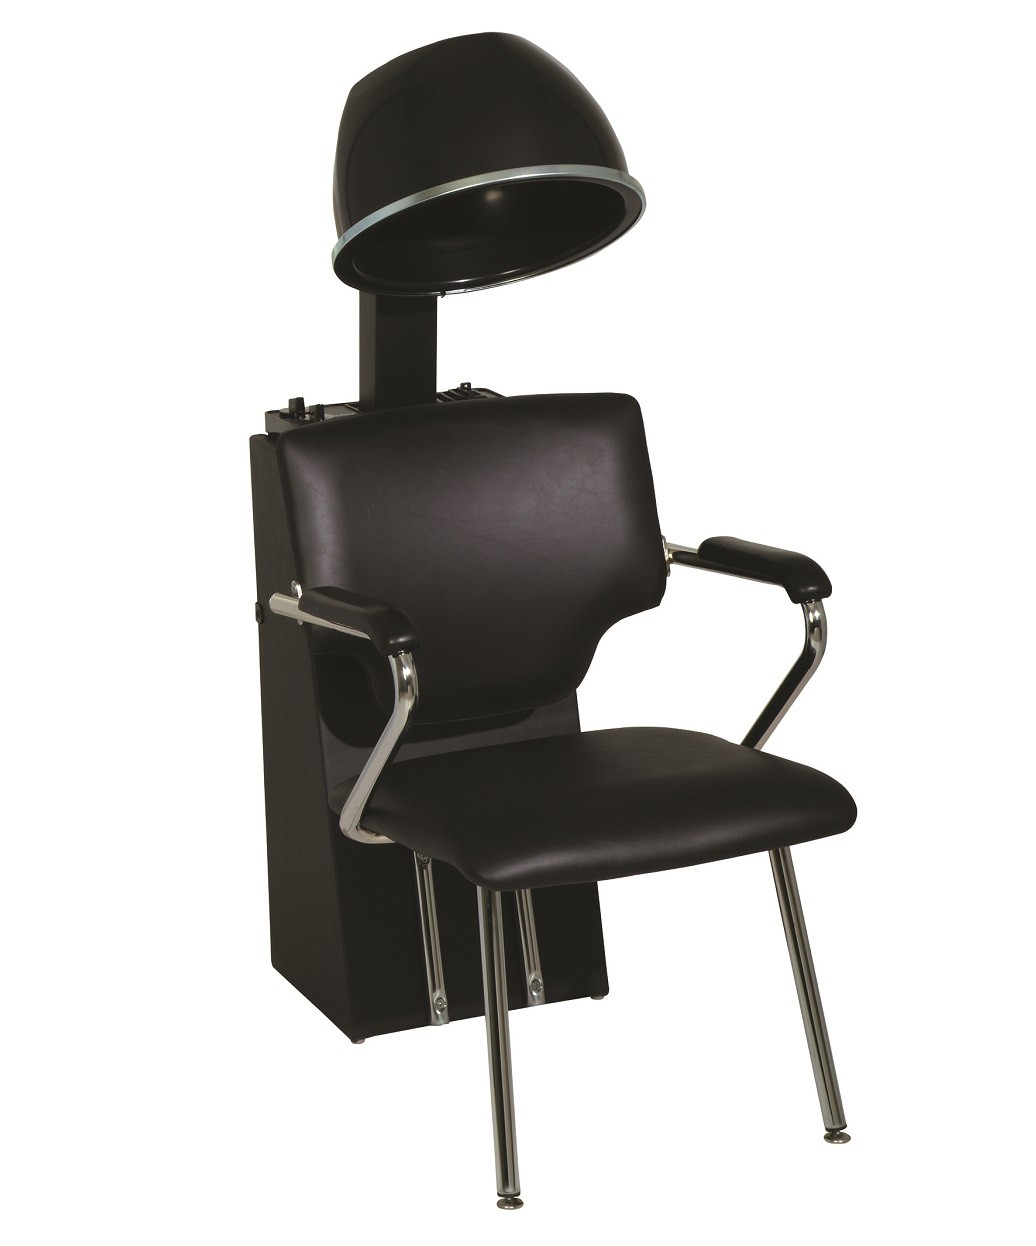 Salon Dryer Chair Belvedere Bl83 Belle Dryer Chair